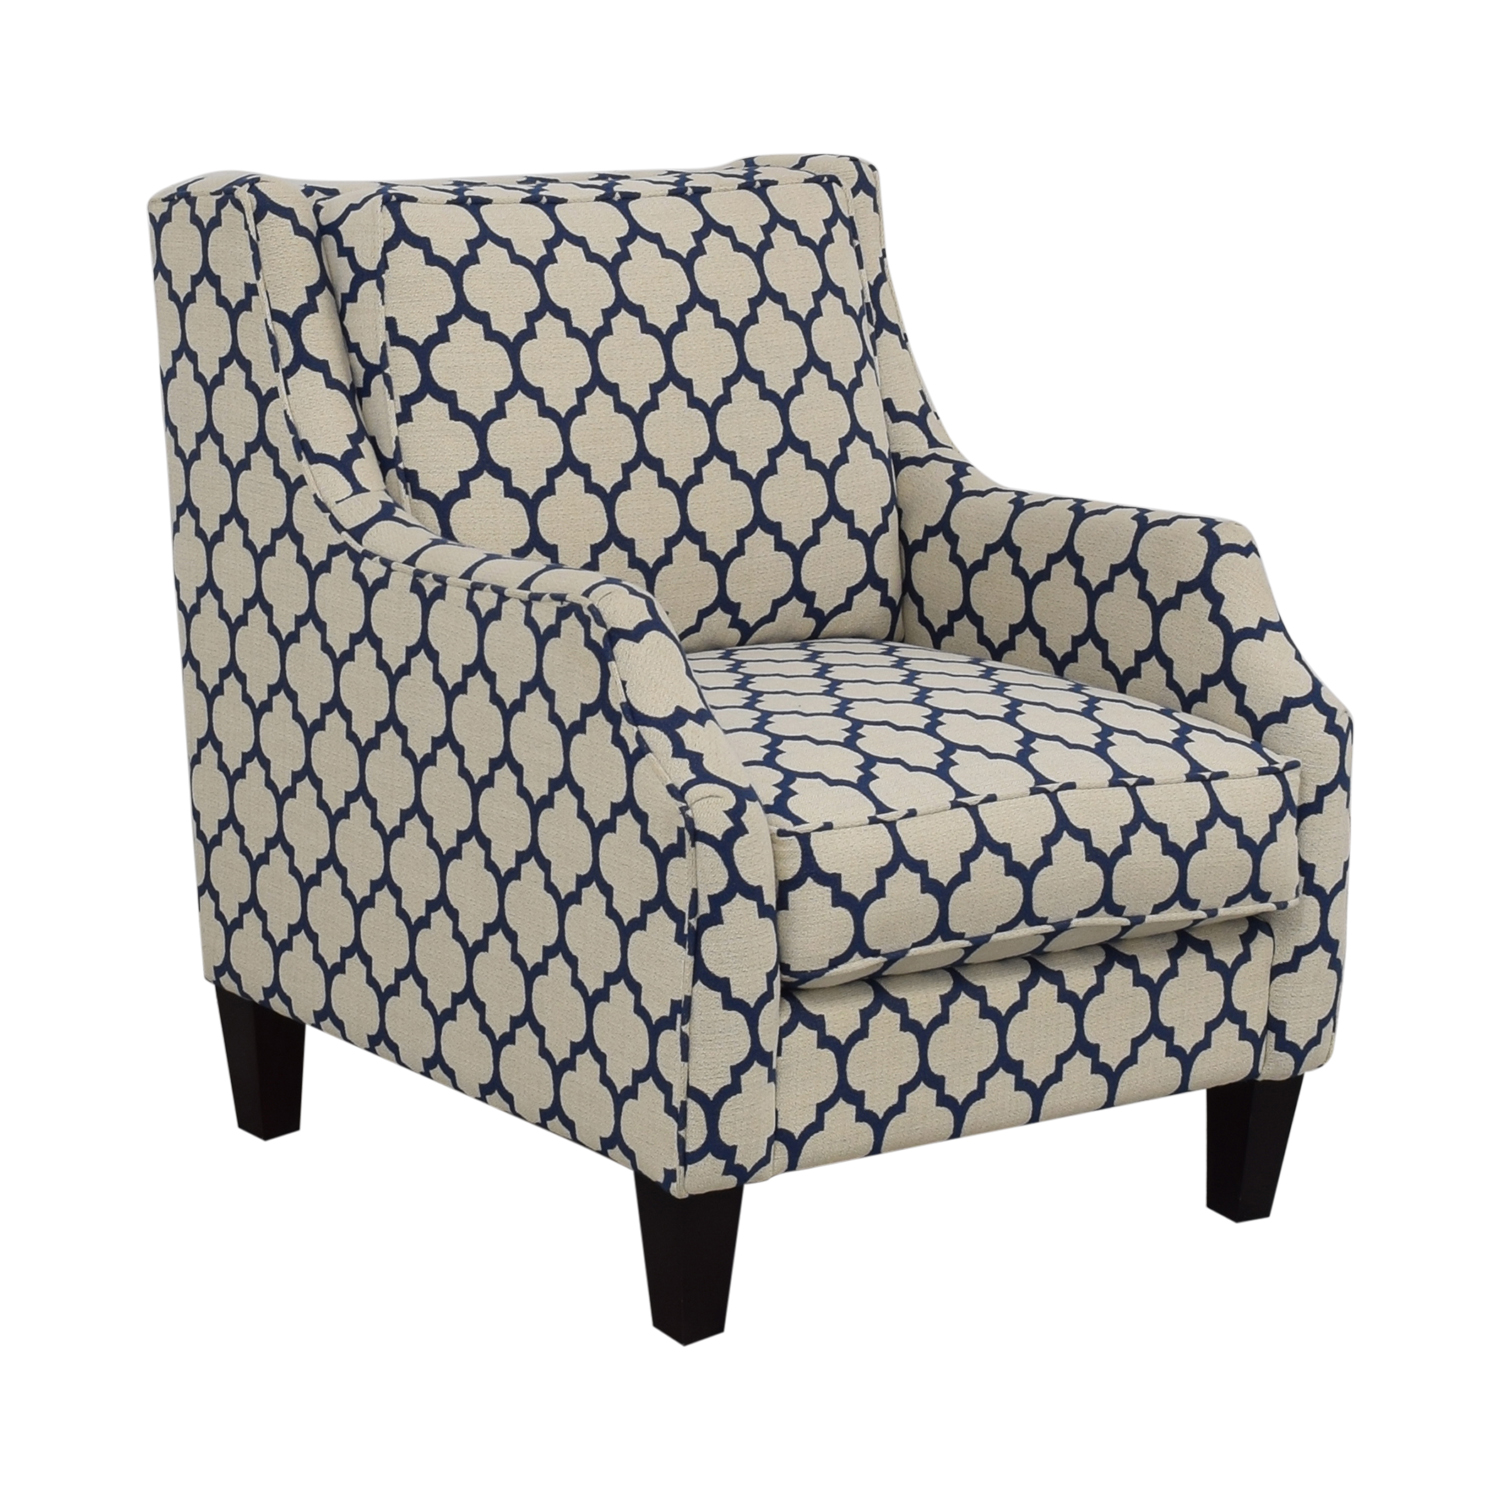 Braxton Culler Braxton Culler White & Blue Accent Chair Chairs